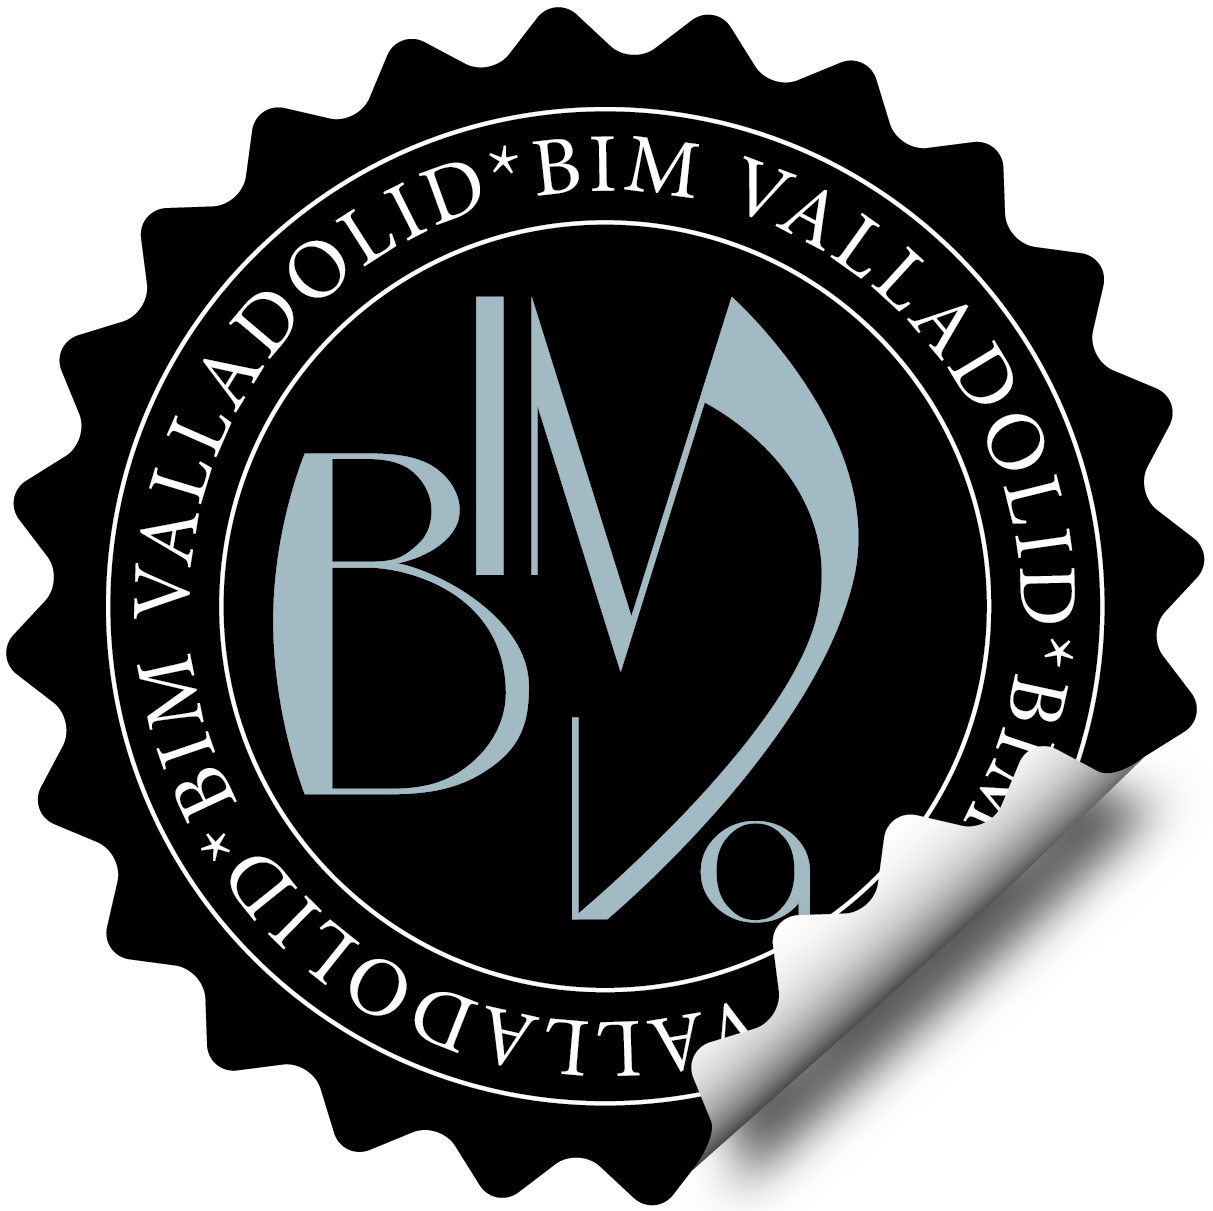 Congreso BIM Valladolid 2014 Del BIM al BIG DATA